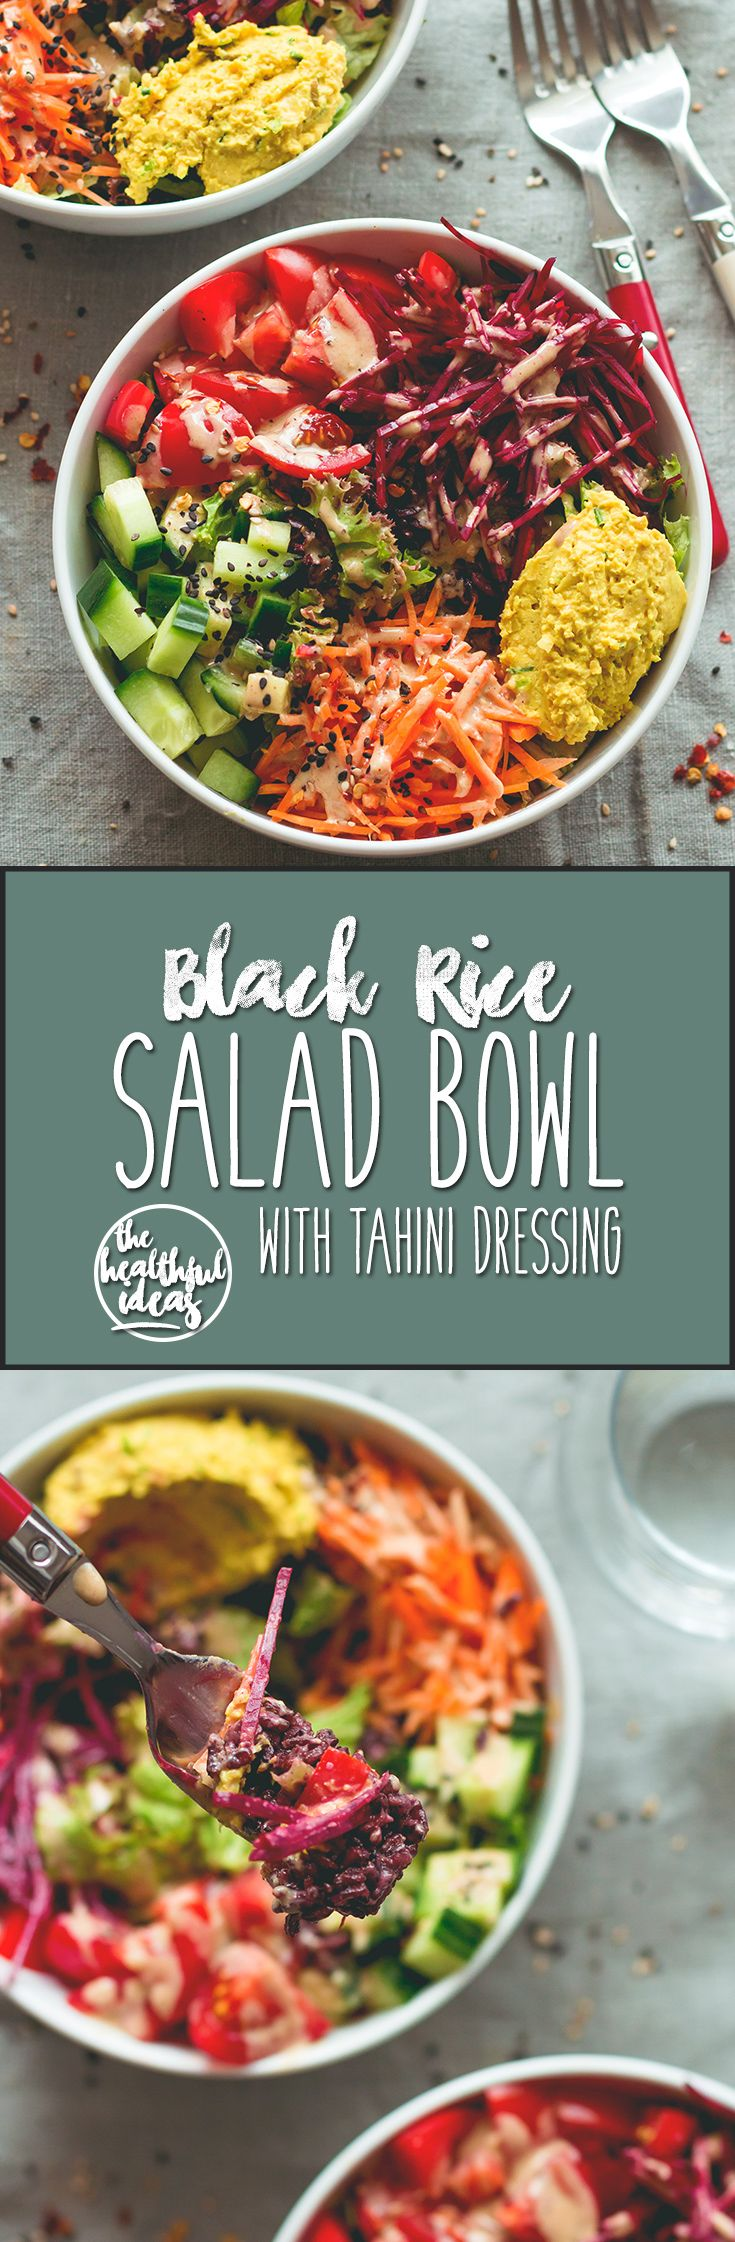 Black Rice Salad Bowl with Tahini Dressing - easy to make fresh summer salad. I love to make this ahead for busy work days! Tomatoes, cucumber, beets, carrots, hummus, lettuce, black rice, and tahini dressing. (vegan, GF)   thehealthfulideas.com